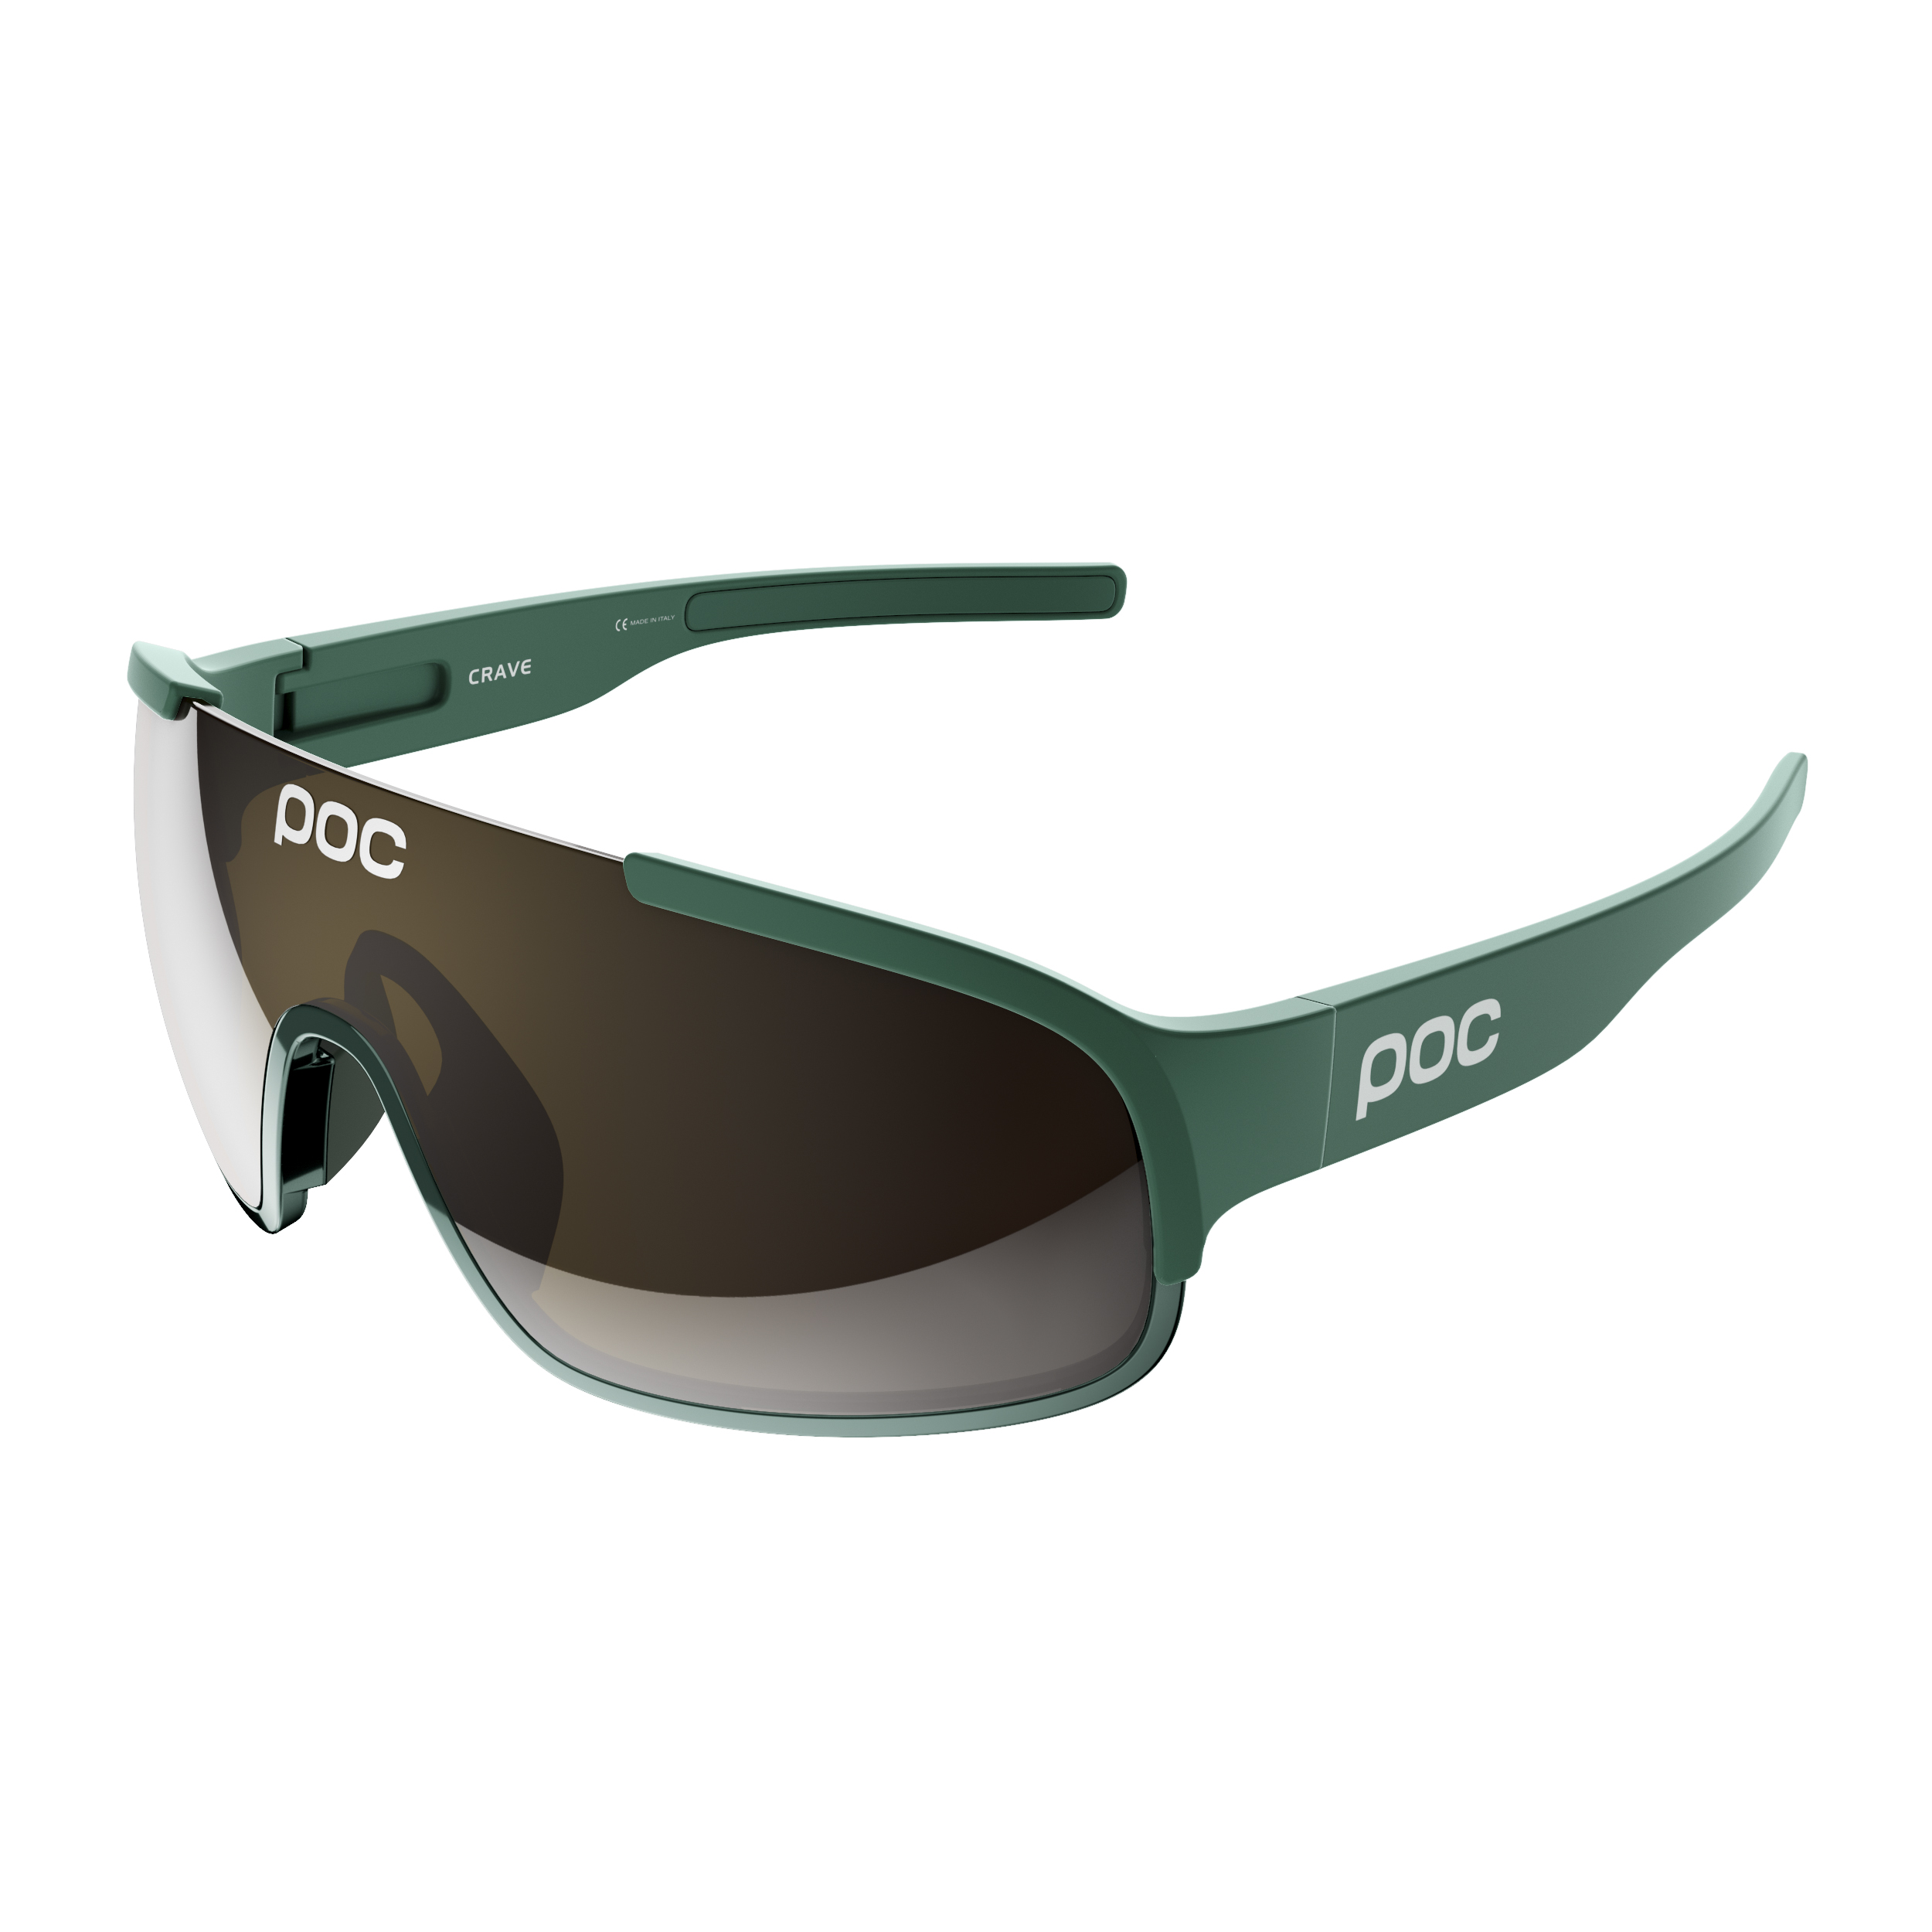 a074f5a27be Adjustable nosepieces and temples keep the glasses securely in place while  the easily interchangeable lenses are designed to allow the user to act on  the ...